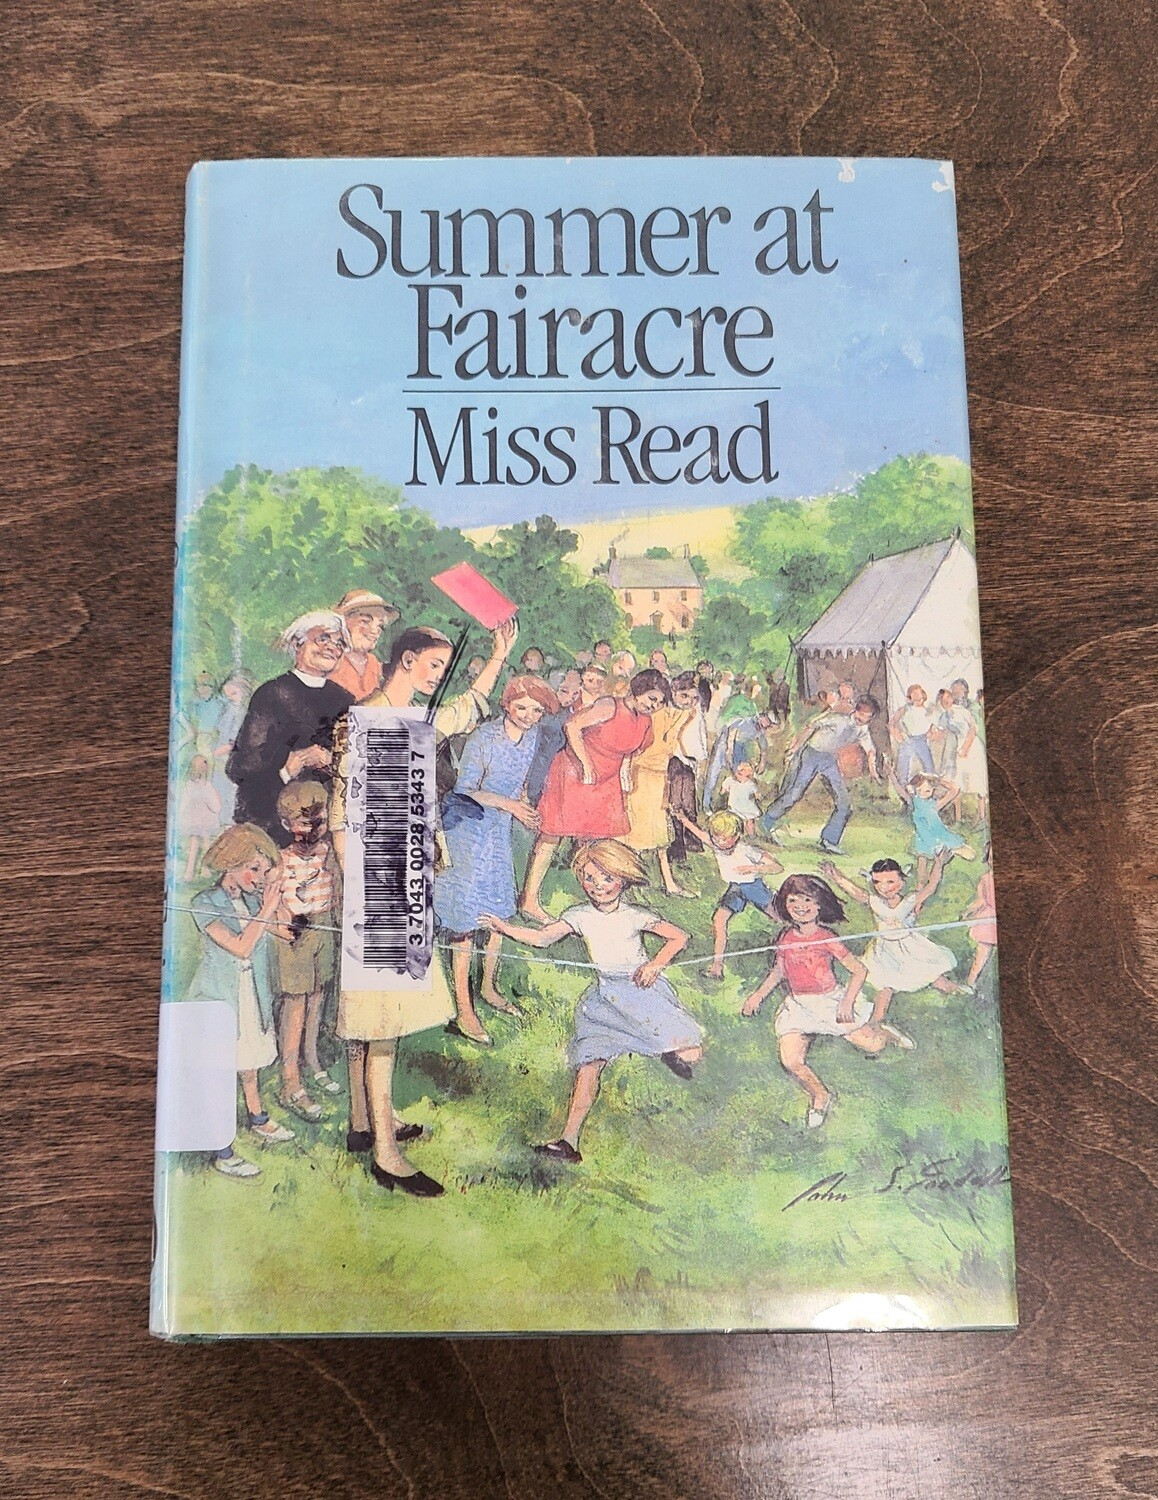 Summer at Fairacre by Miss Read - Hardback